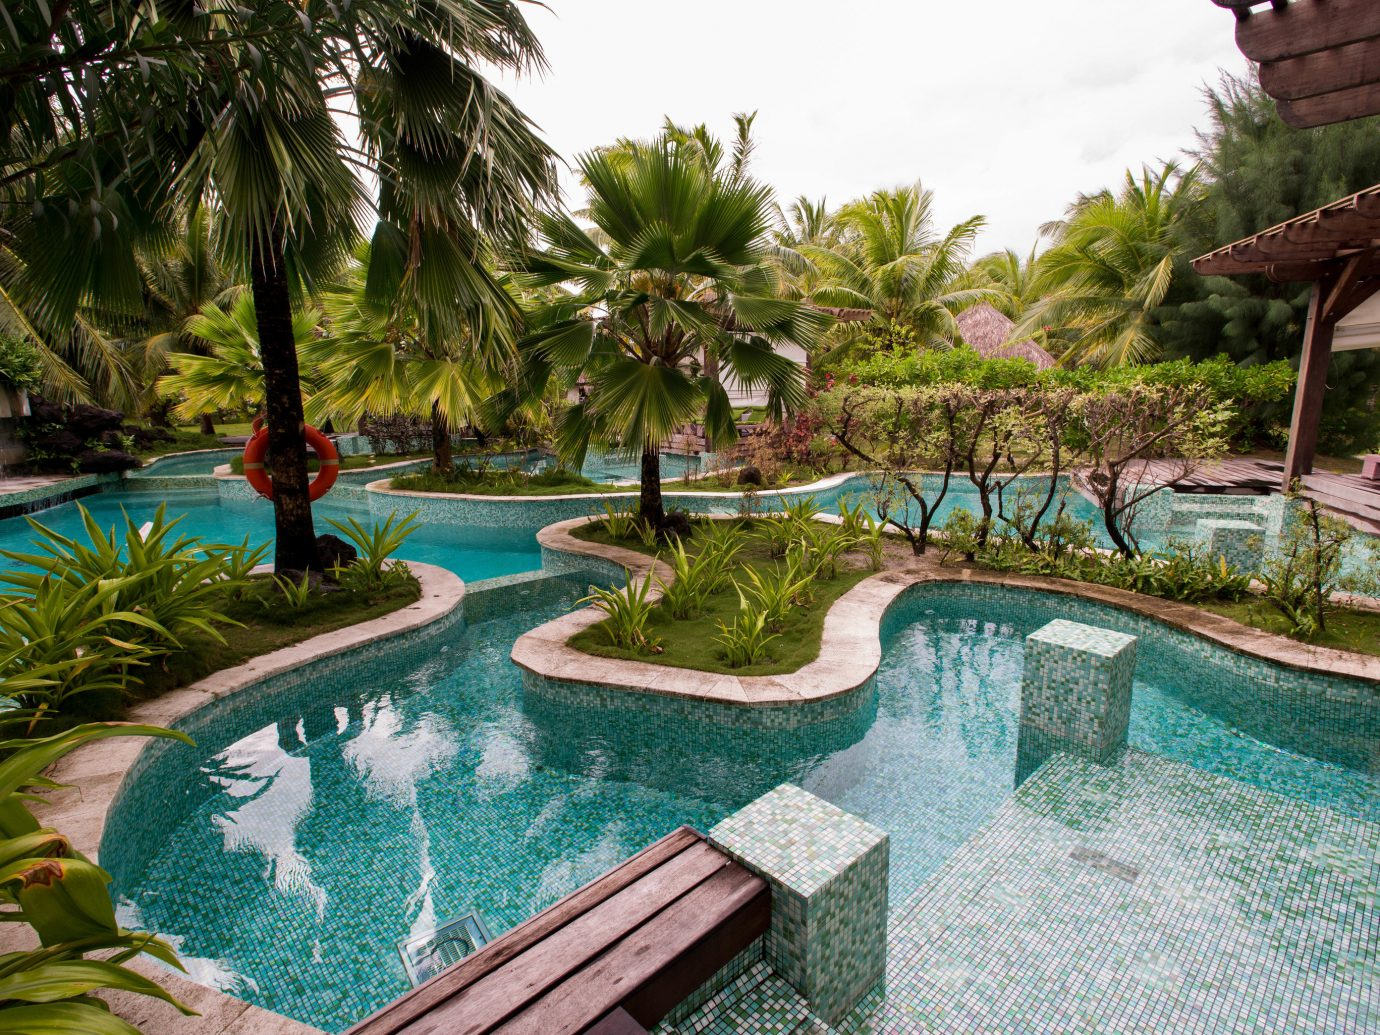 All-Inclusive Resorts Boutique Hotels Hotels Romance tree Resort swimming pool outdoor property leisure building estate vacation green resort town Villa backyard real estate eco hotel Garden mansion palm plant area furniture